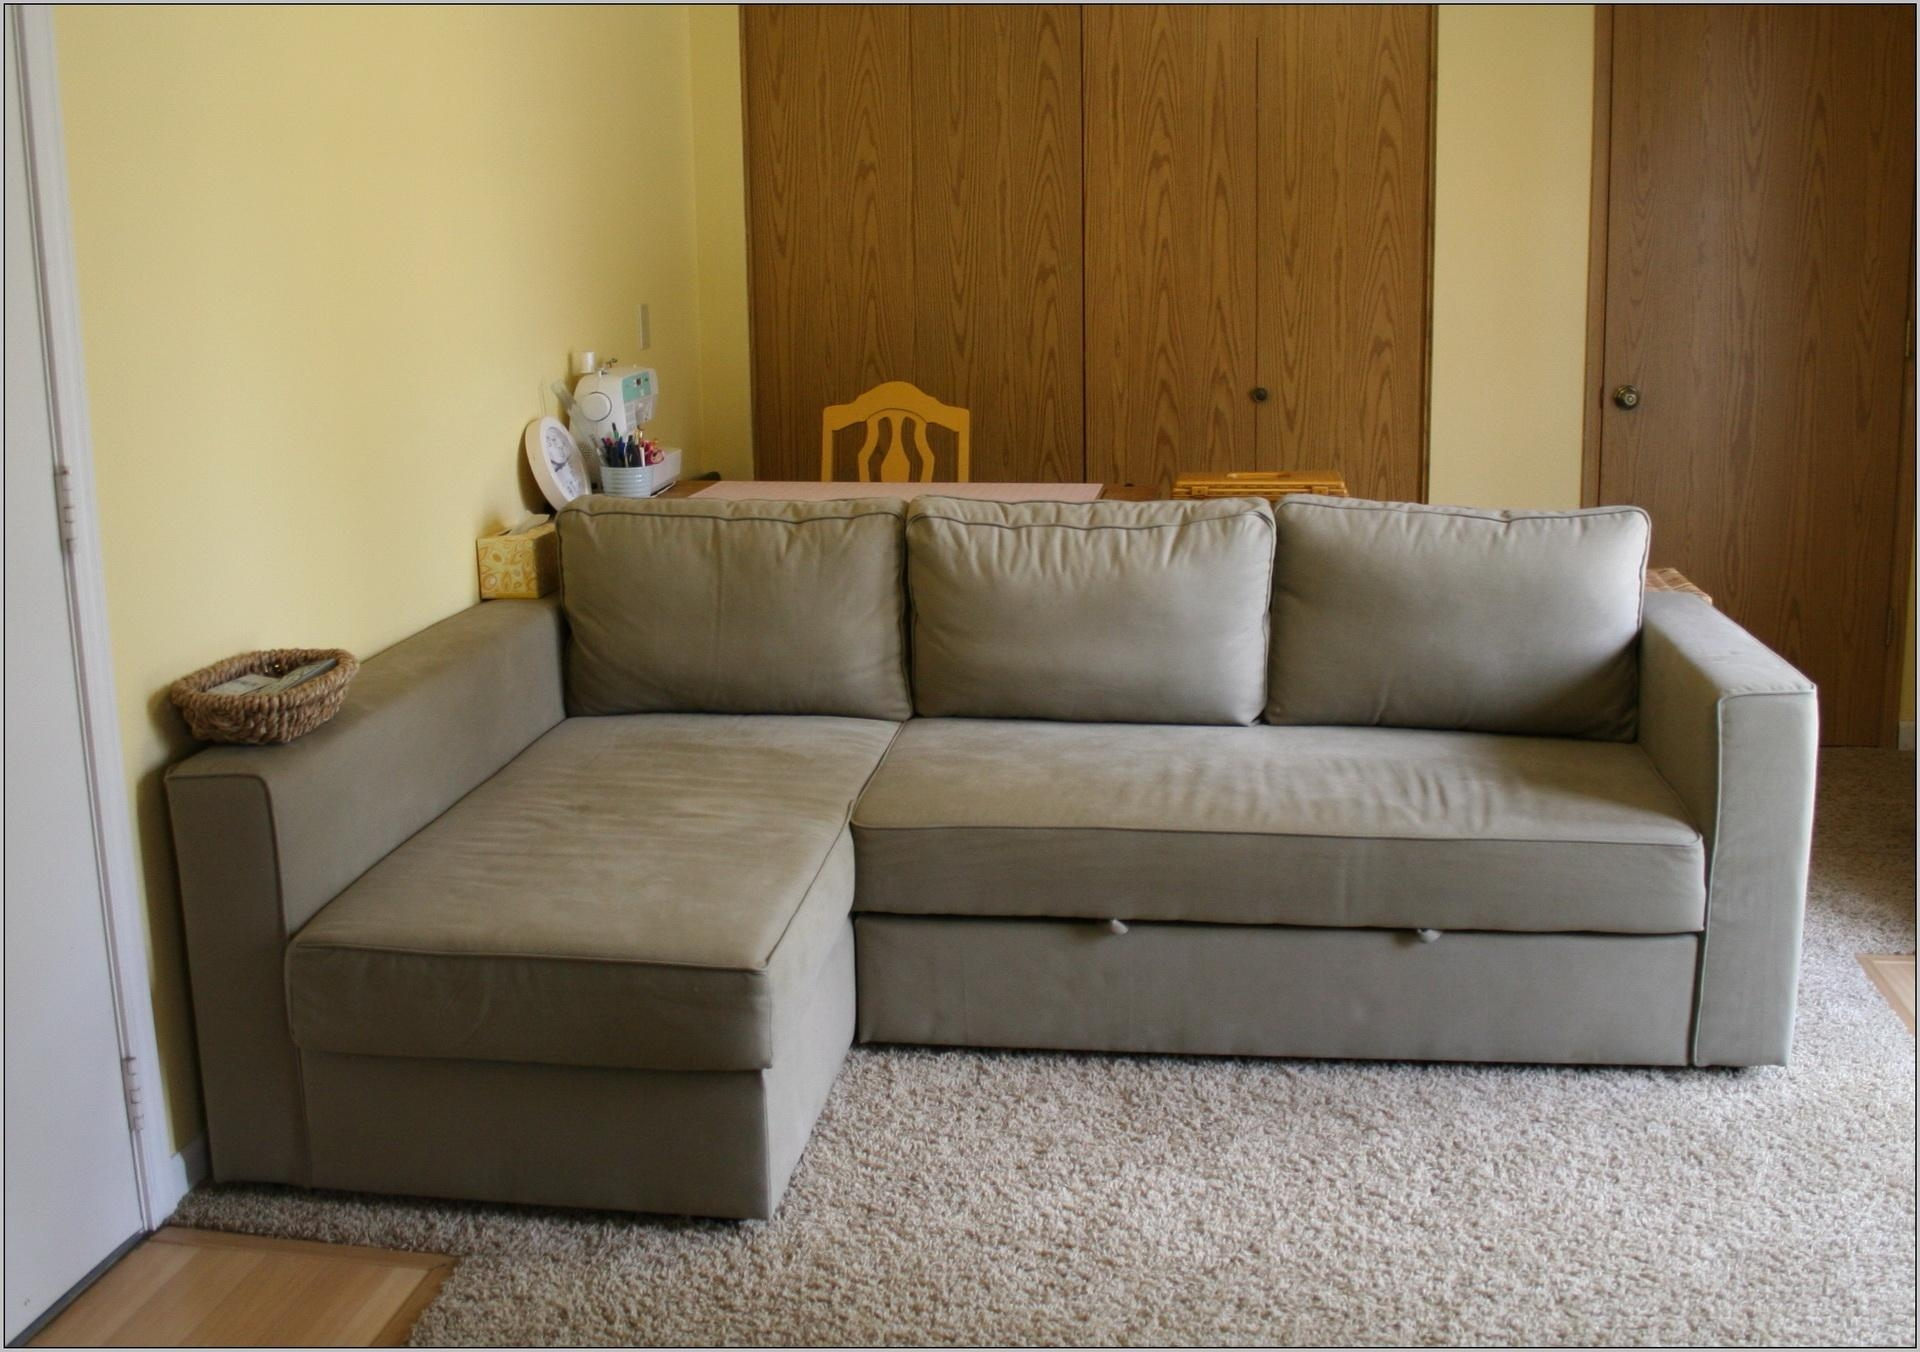 Furniture: Ikea Sleeper Sofa | Sleeper Sectional Sofa Ikea With Sleeper Sofa Sectional Ikea (View 5 of 20)